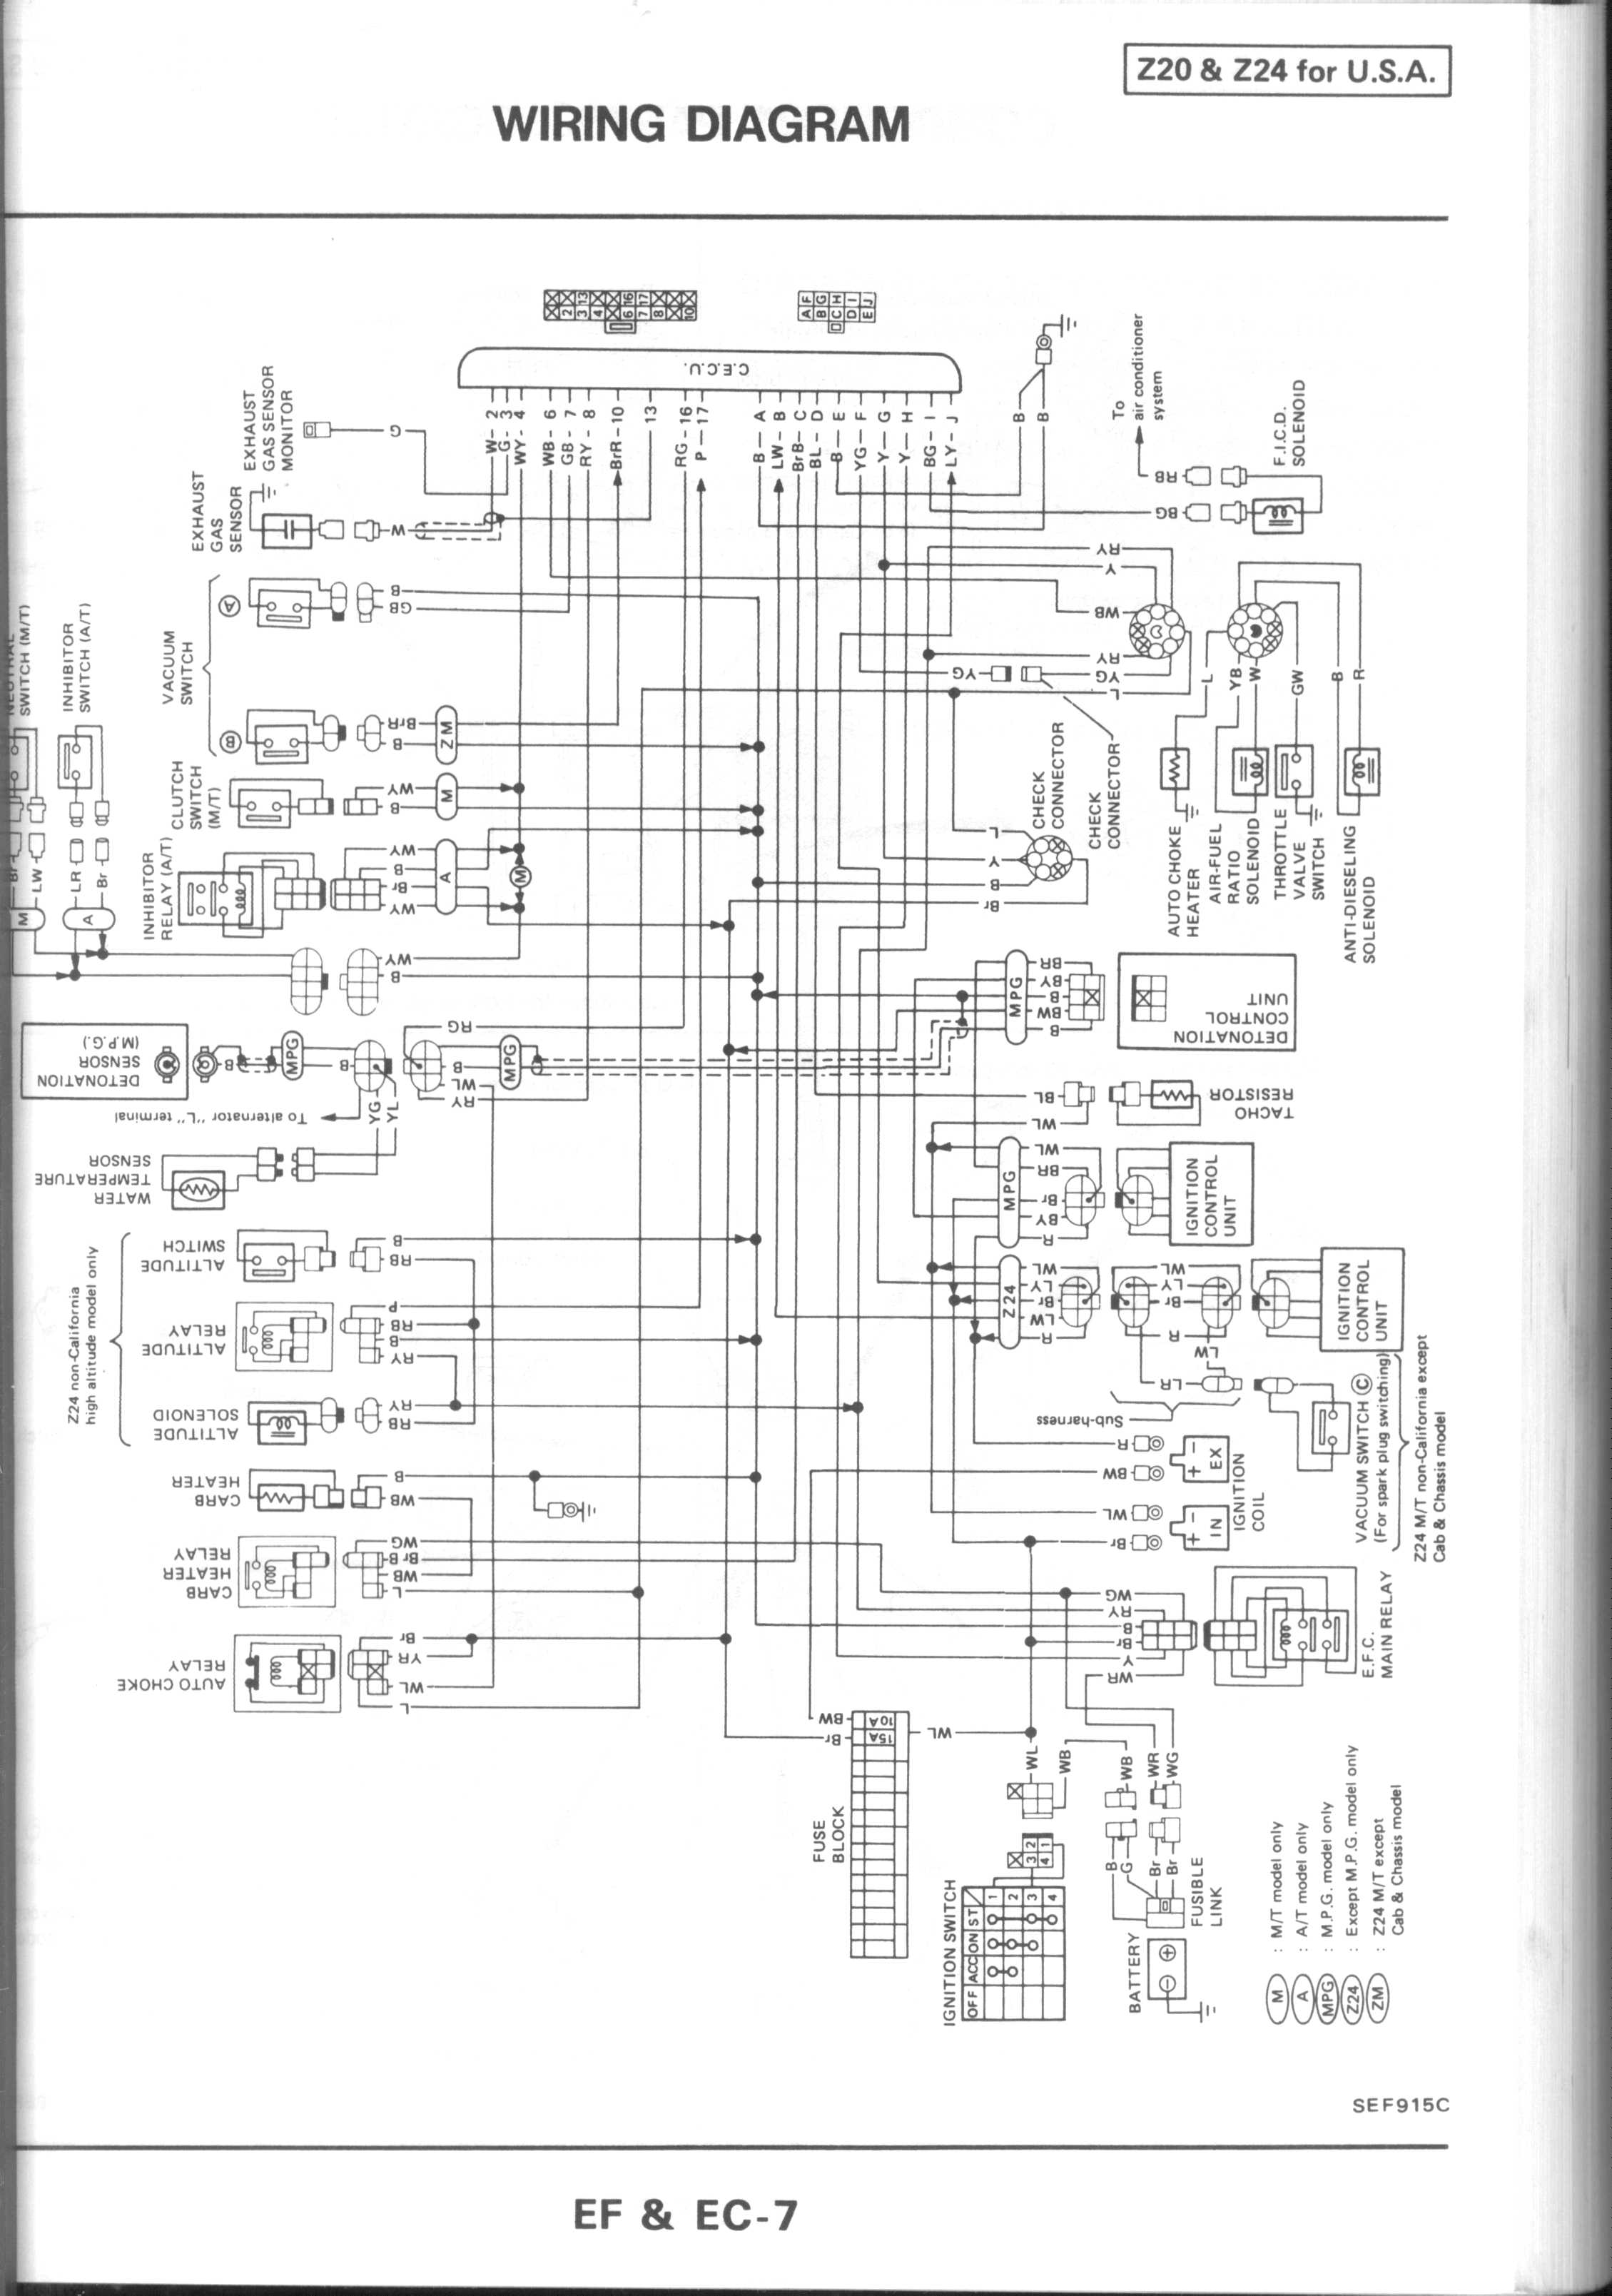 mrap wiring diagram a